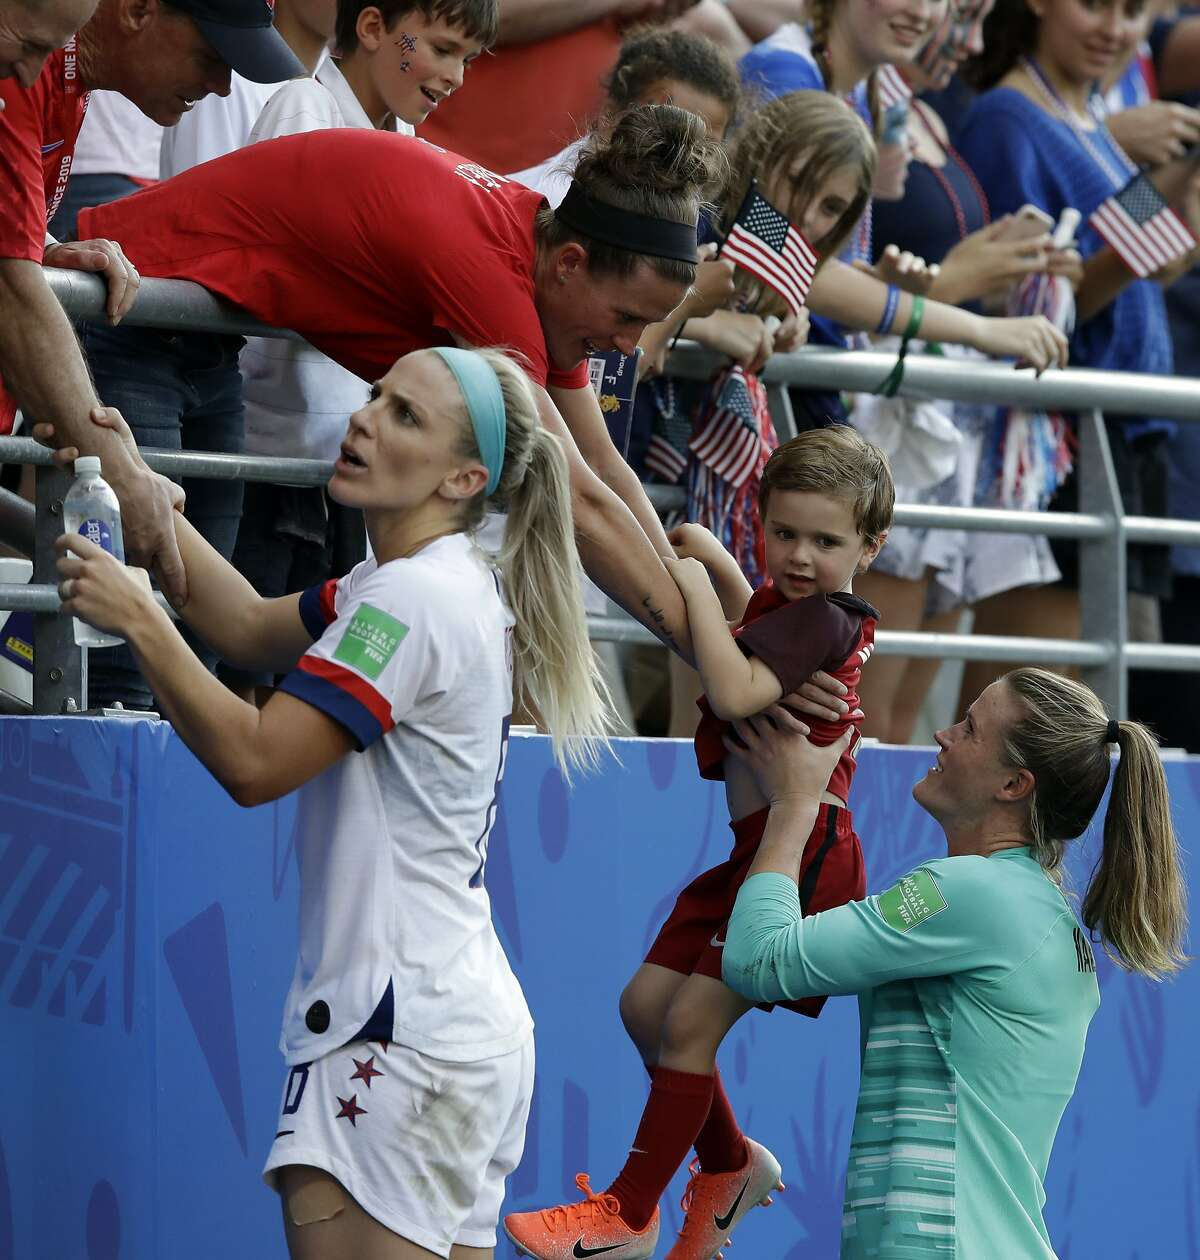 United States players celebrates with supporters at the end of the Women's World Cup round of 16 soccer match between Spain and US at the Stade Auguste-Delaune in Reims, France, Monday, June 24, 2019. US beat Spain 2-1. (AP Photo/Alessandra Tarantino)